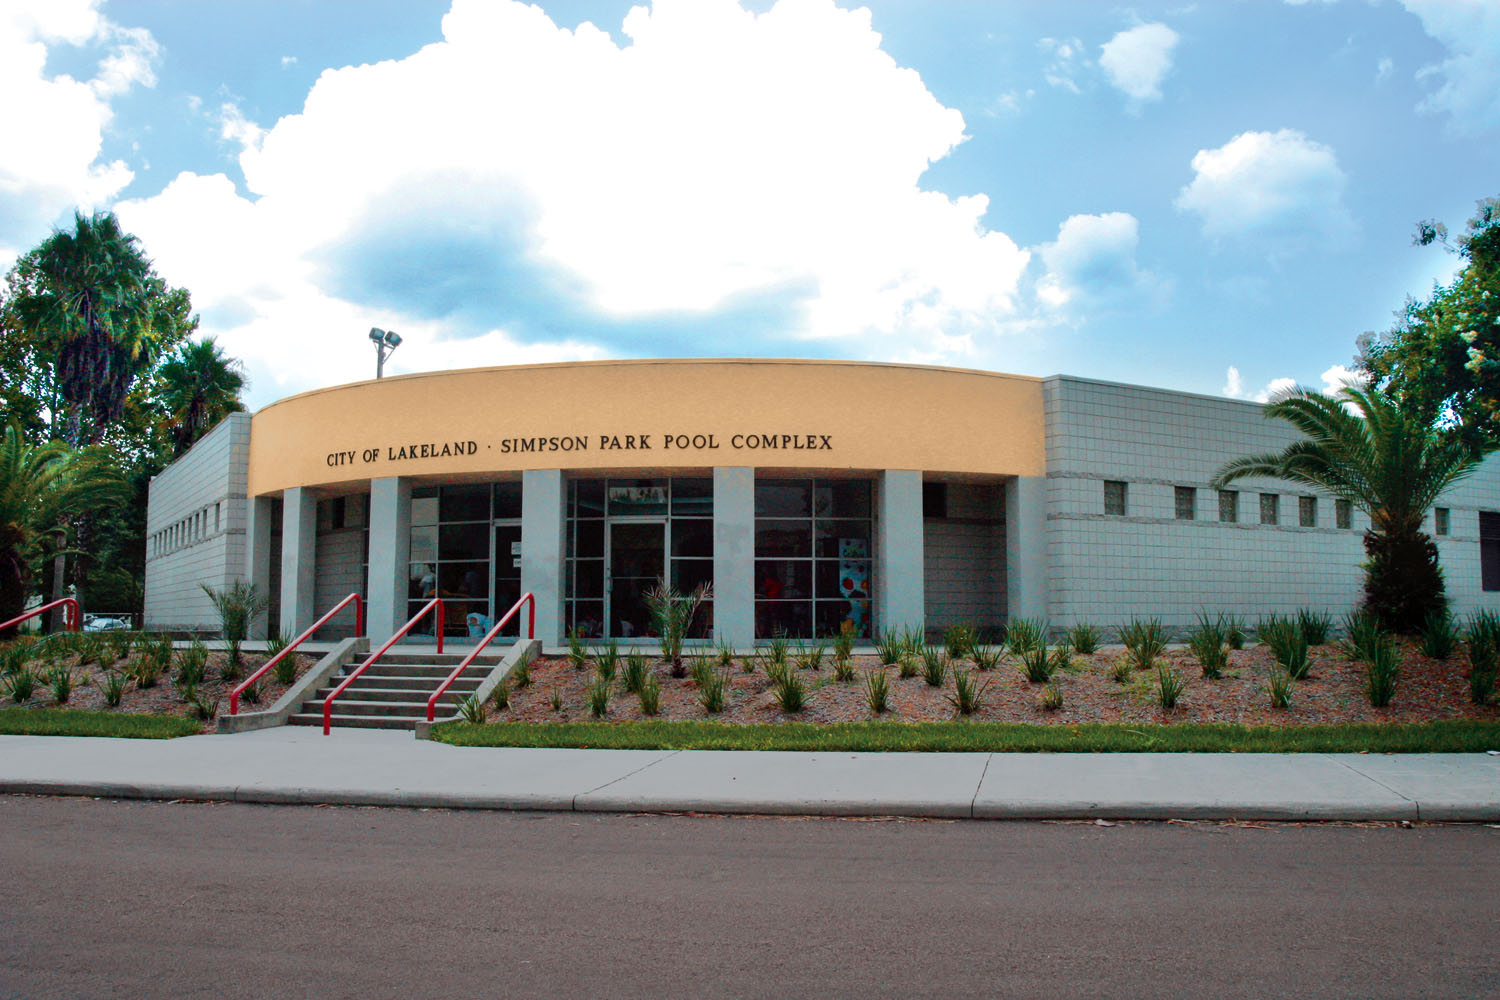 The front of the Simpson Park Community Center pool complex